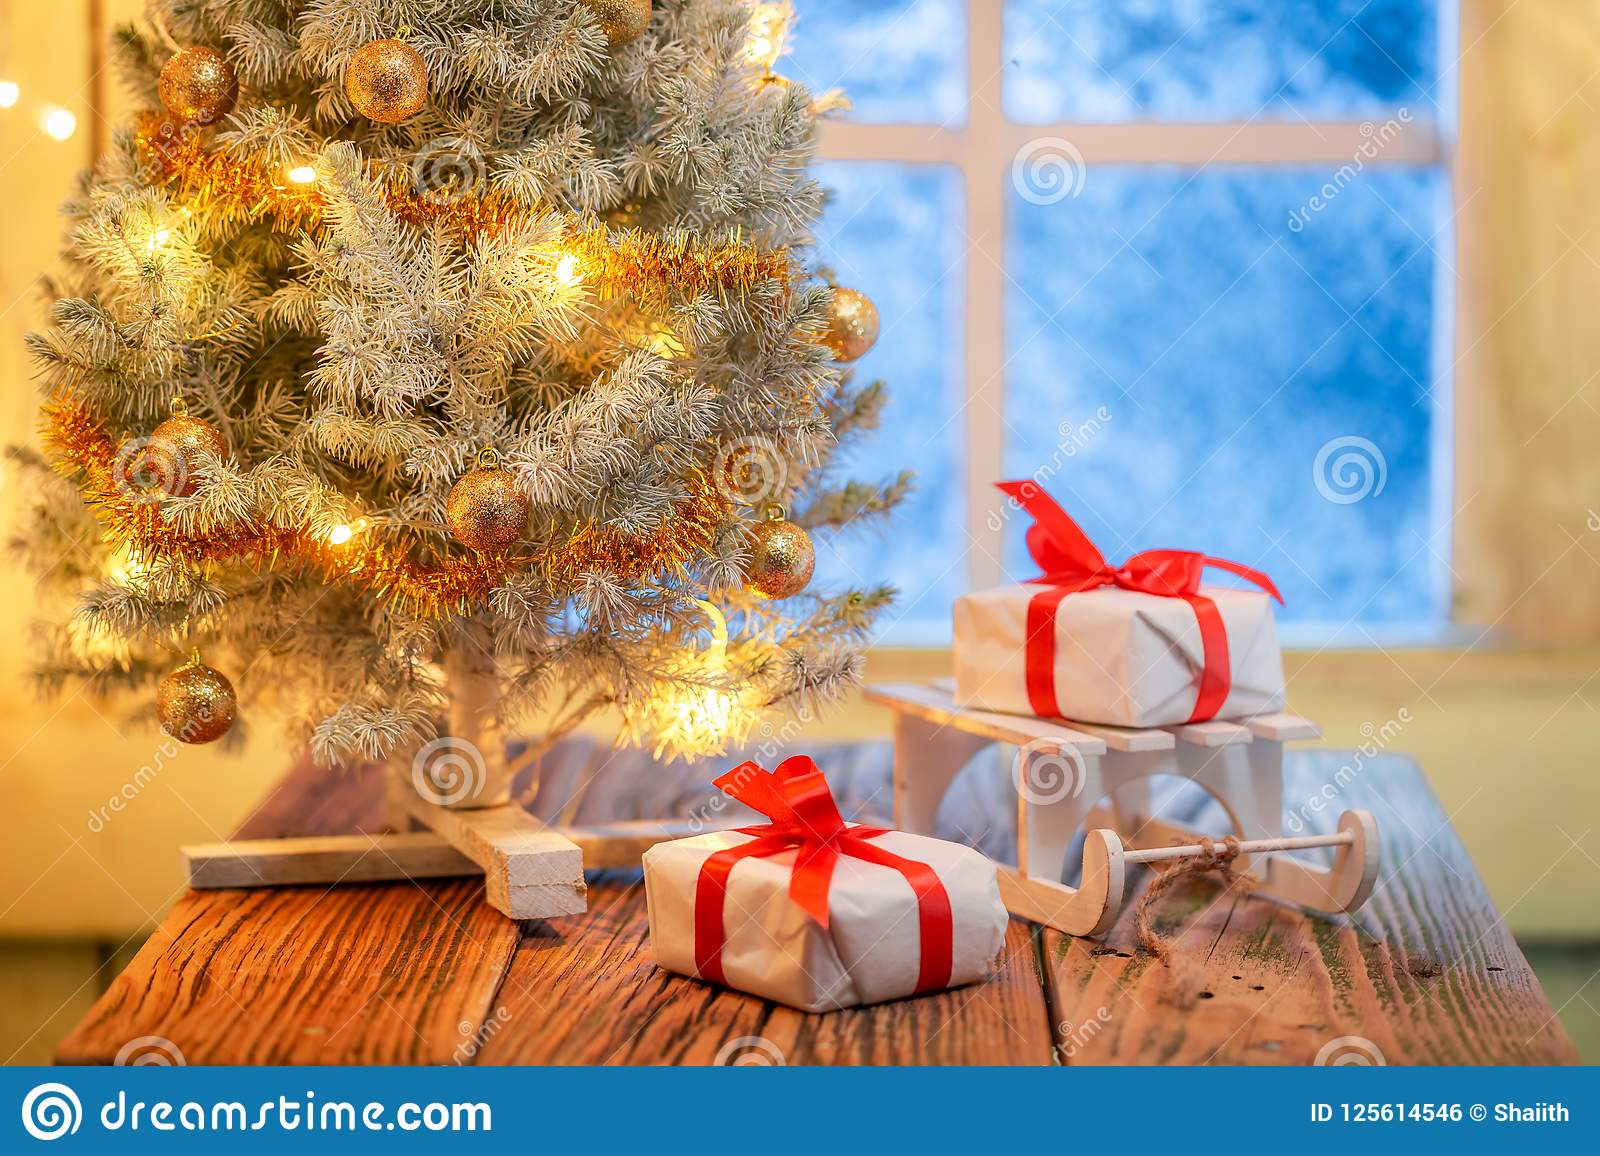 Adorable Christmas Tree And Gifts With Lights And Frozen Window ...